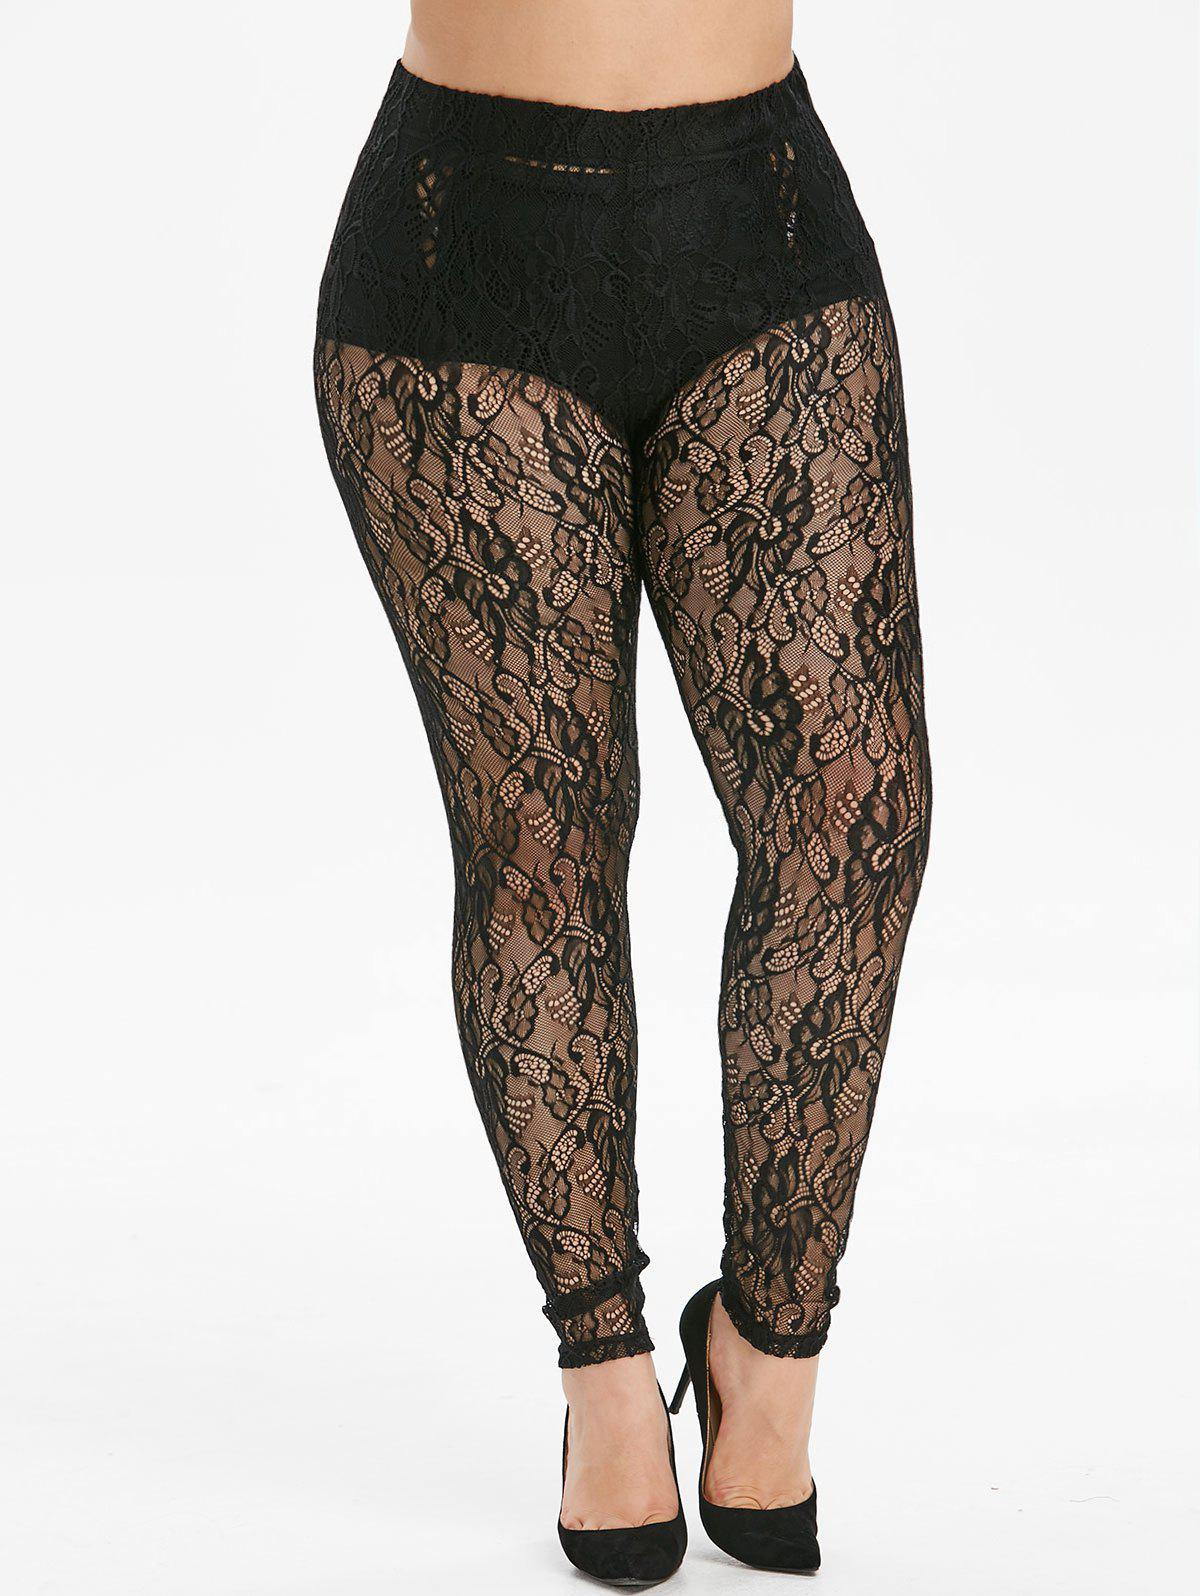 Shop Openwork High Waisted Lace Plus Size Leggings